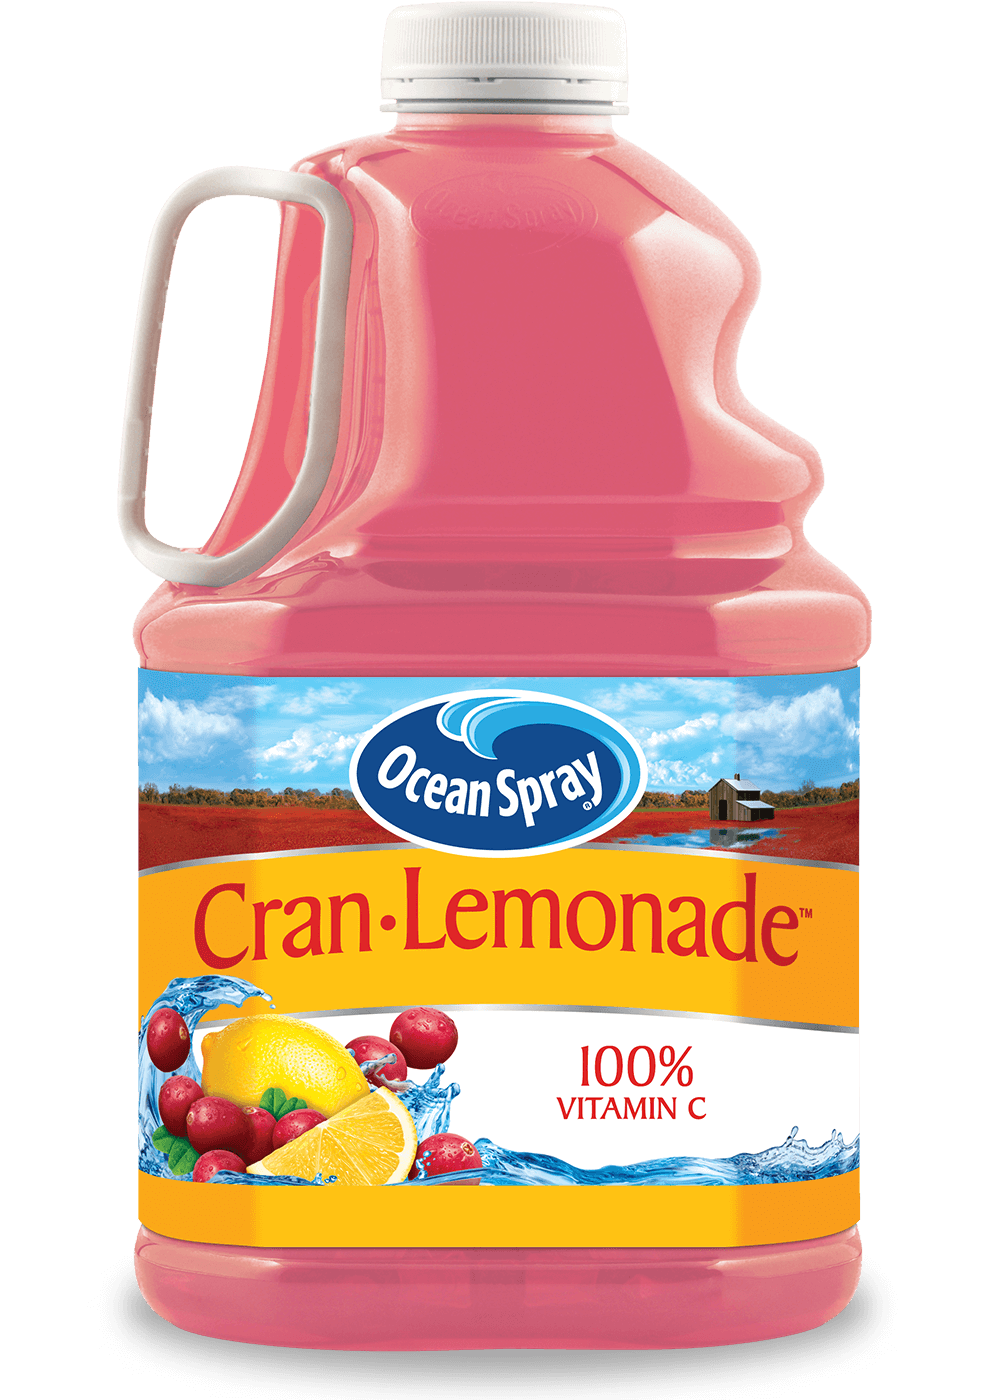 Cran•Lemonade™ Cranberry Lemonade Juice Drink